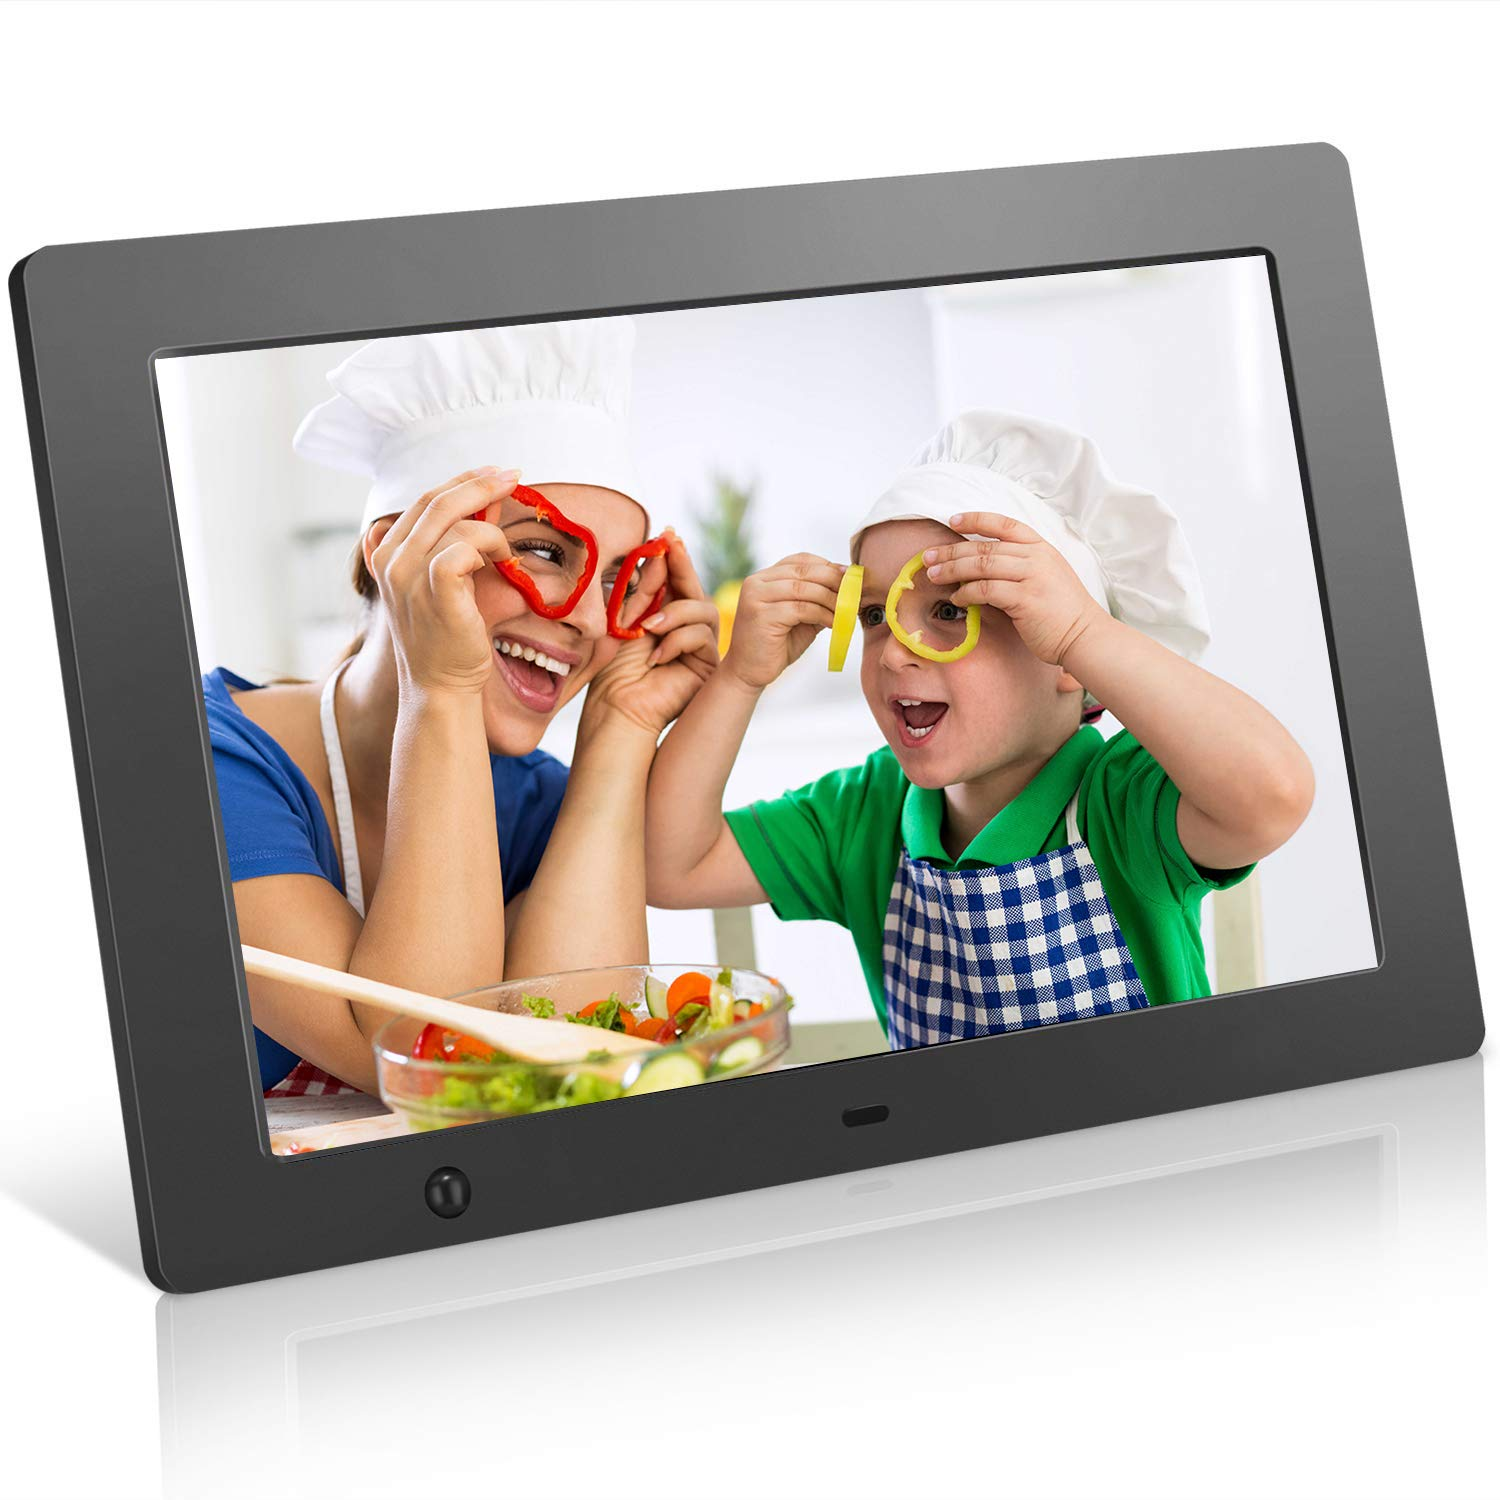 Digital Picture Frame 10.1 in, Digital Photo Frame Video Player with Motion Sensor Smart Electronics Picture Frame High Resolution 1024x768 IPS LCD/1080P 720P /Stereo/MP3/Calendar/Time/Remote Control by Quality Life